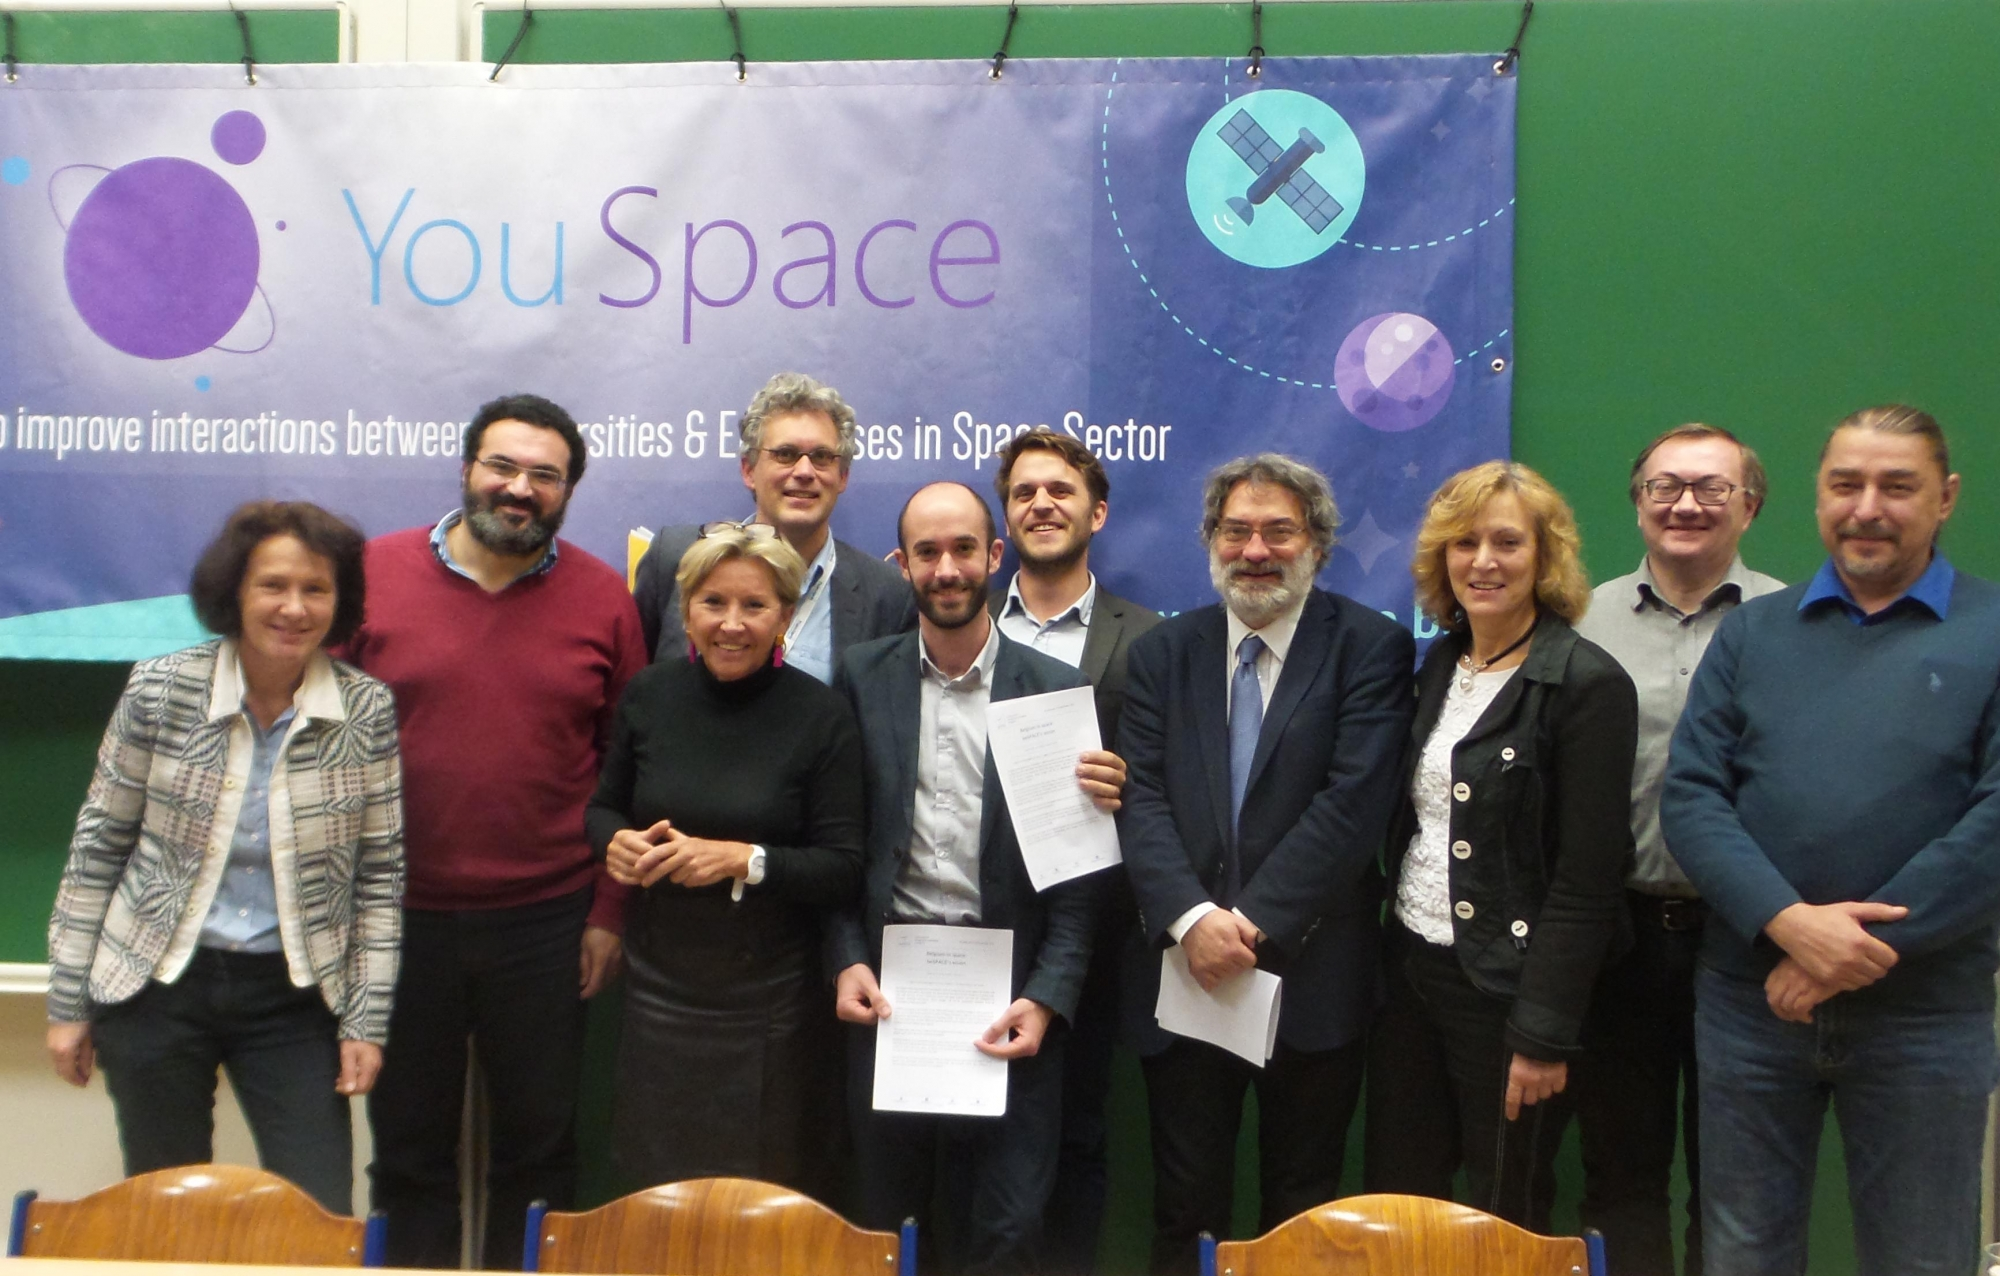 YouSpace in Universities at VUB/ULB